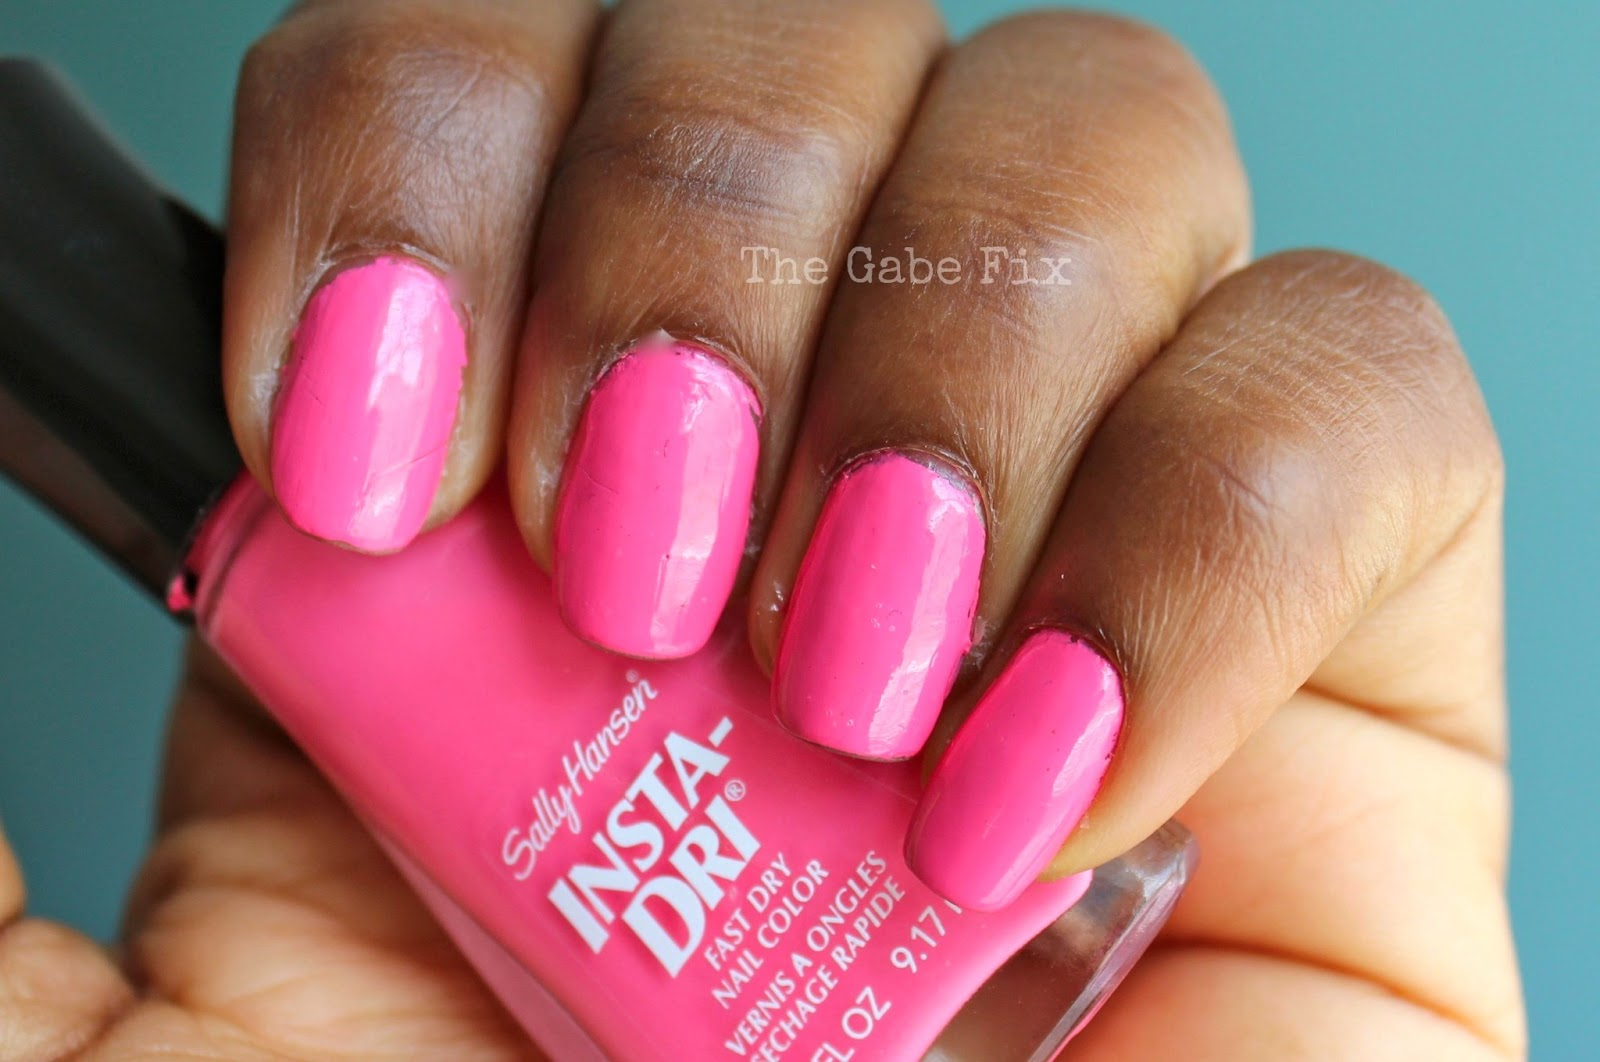 Manicure Monday - Fuchsia Flare - The Gabe Fix by Gabrielle Flowers